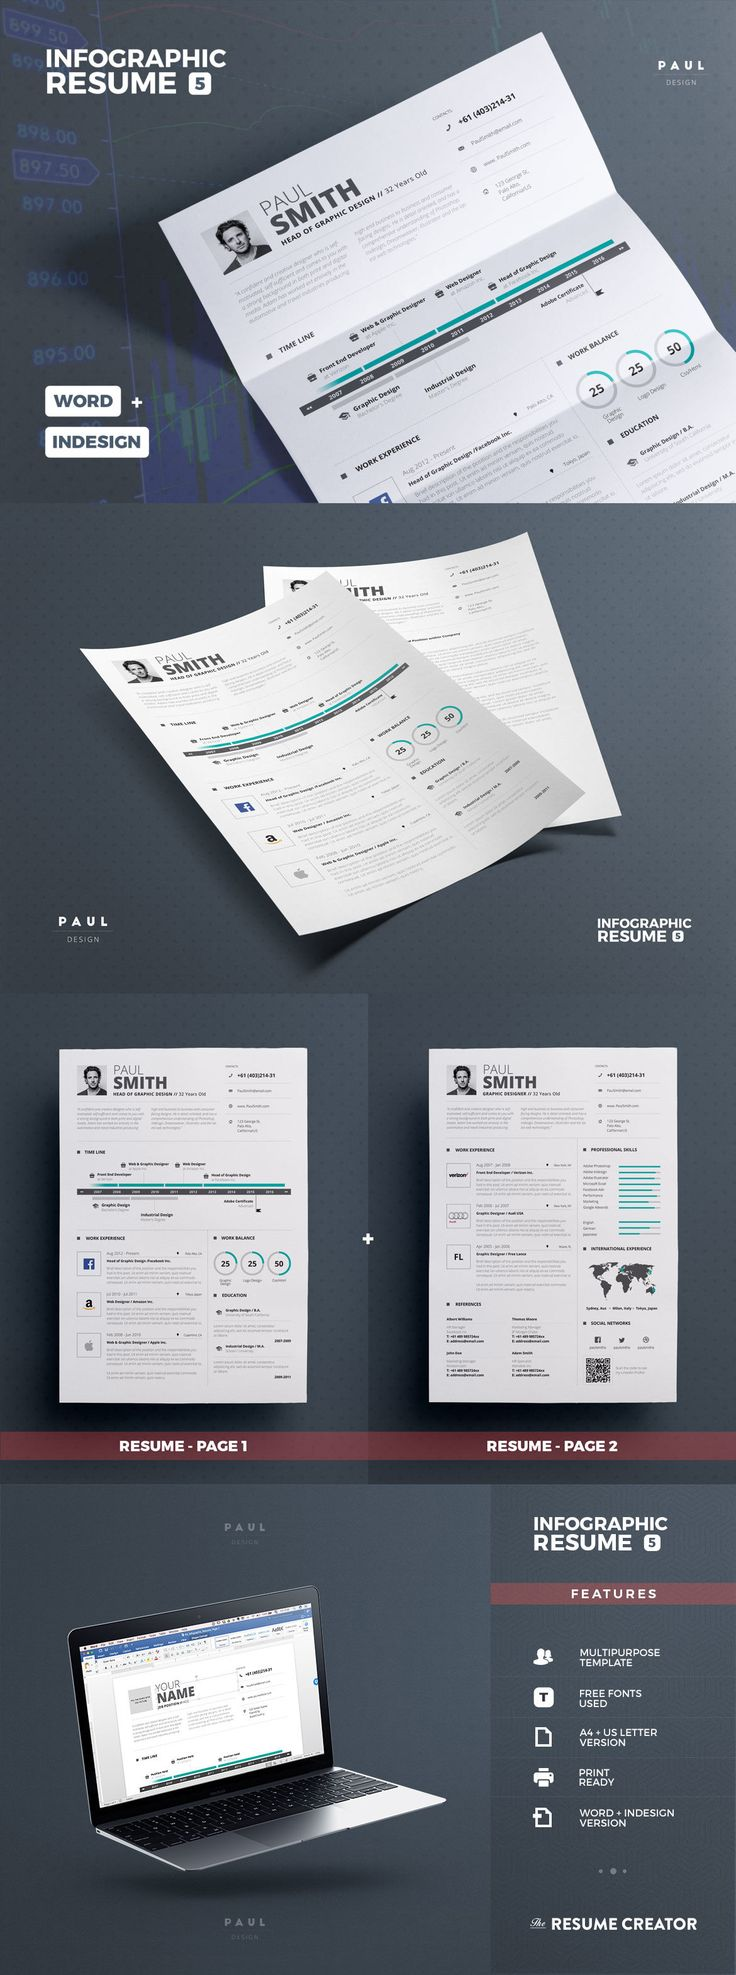 Infographic Resume / Cv Template INDD, MS Word